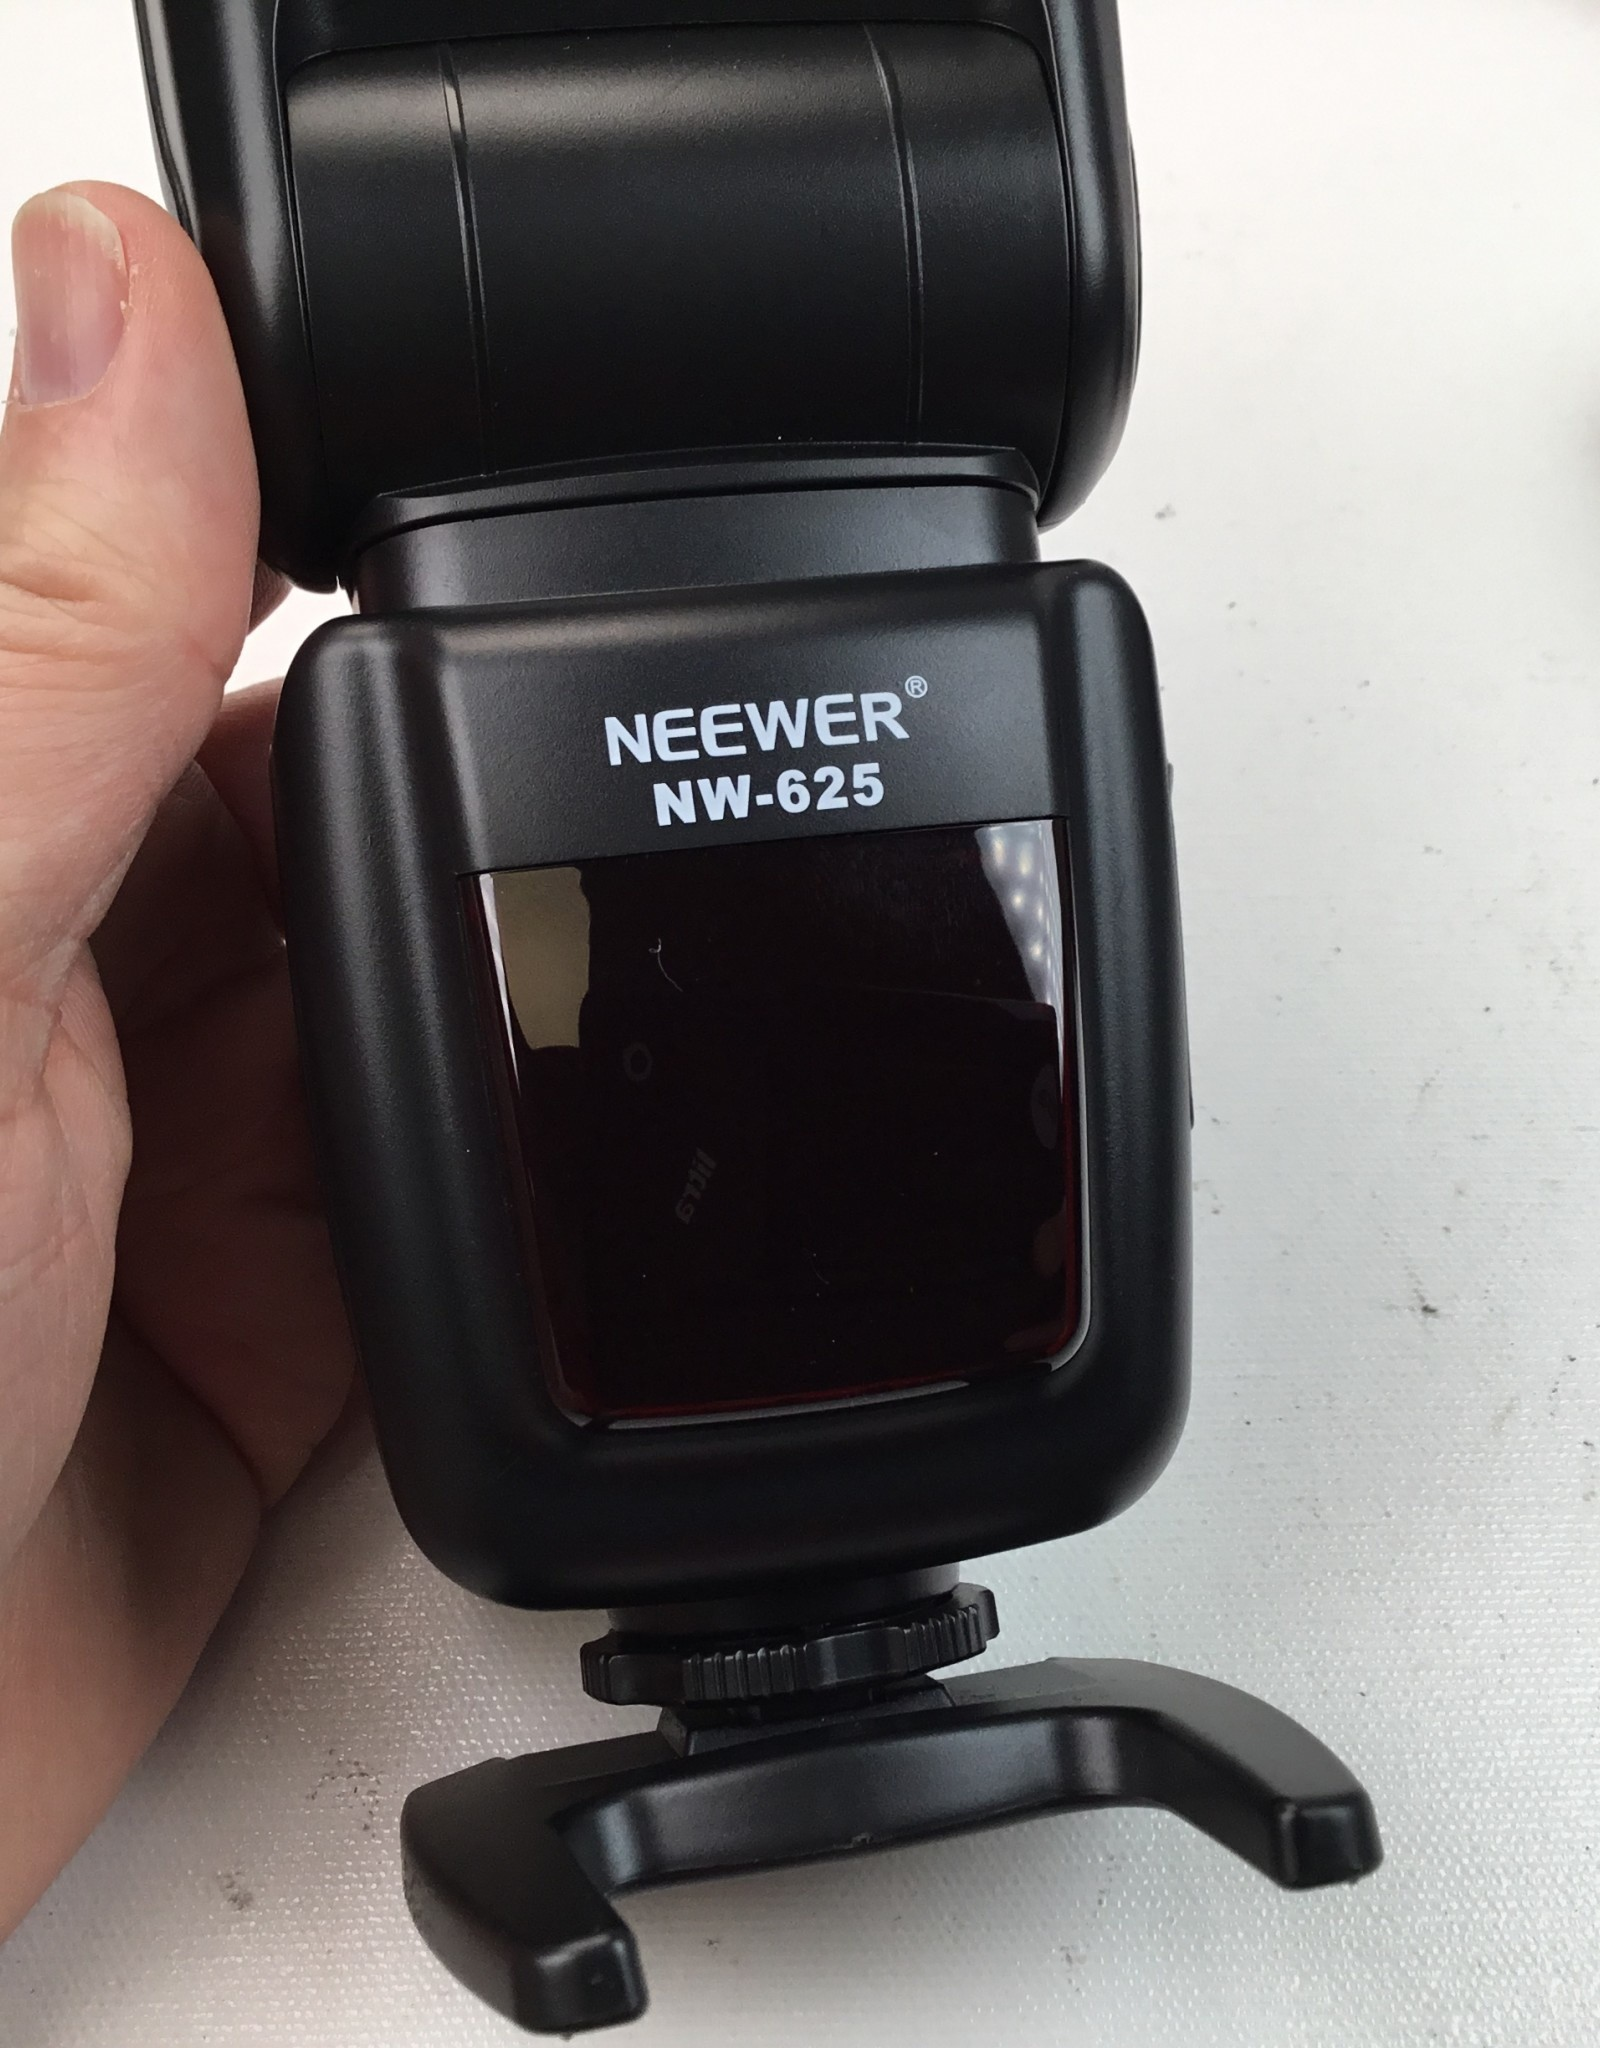 Neewer Neewer Speedlite Flash NW-625 in Box Used EX+